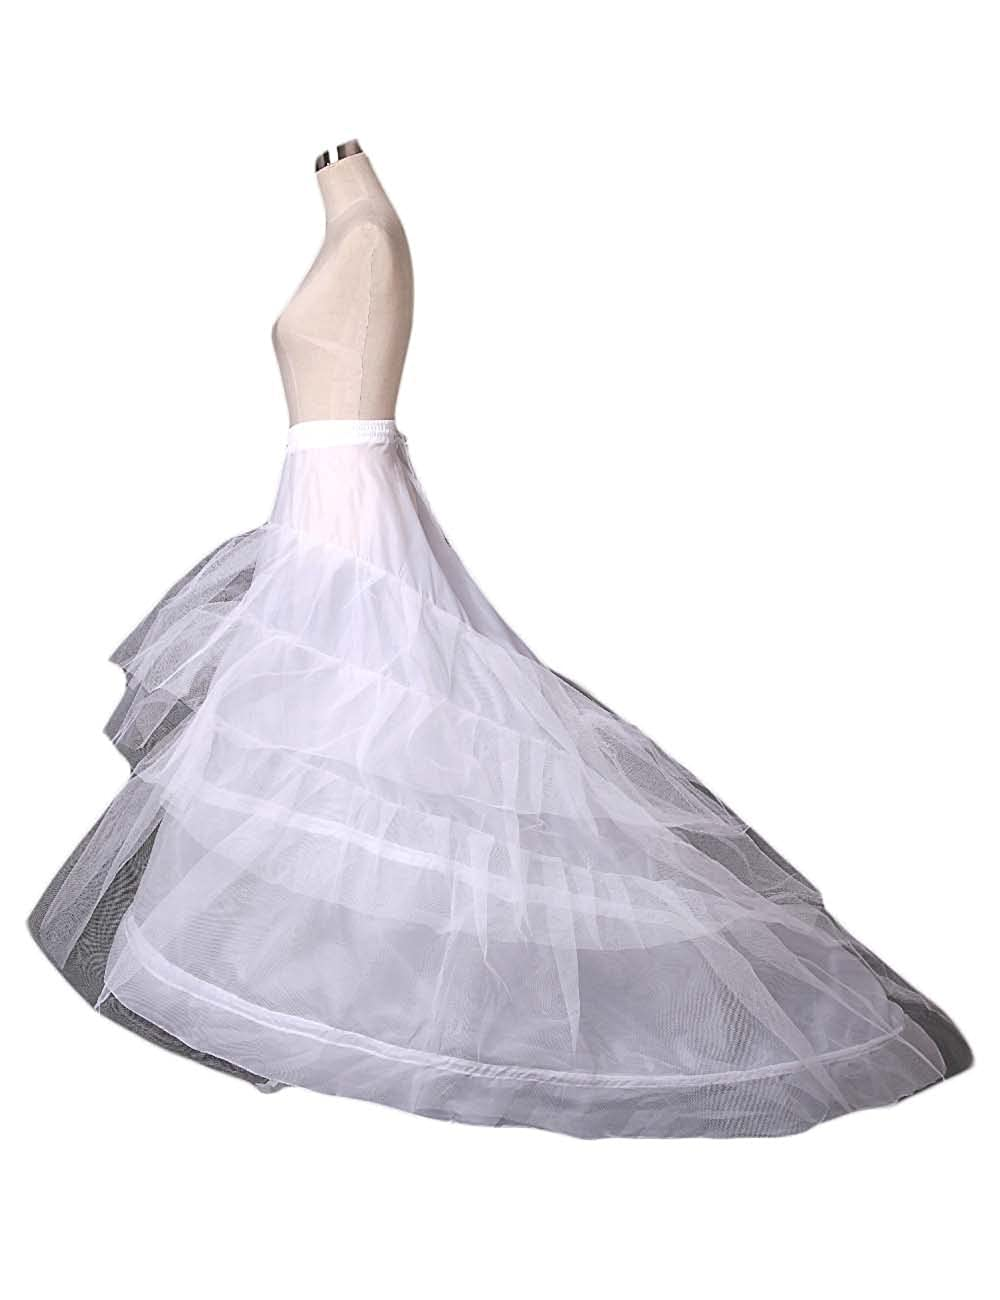 AliceHouse Women's 2-Hoop 3-Layer A-Line Wedding Petticoat Train Underskirt 9021